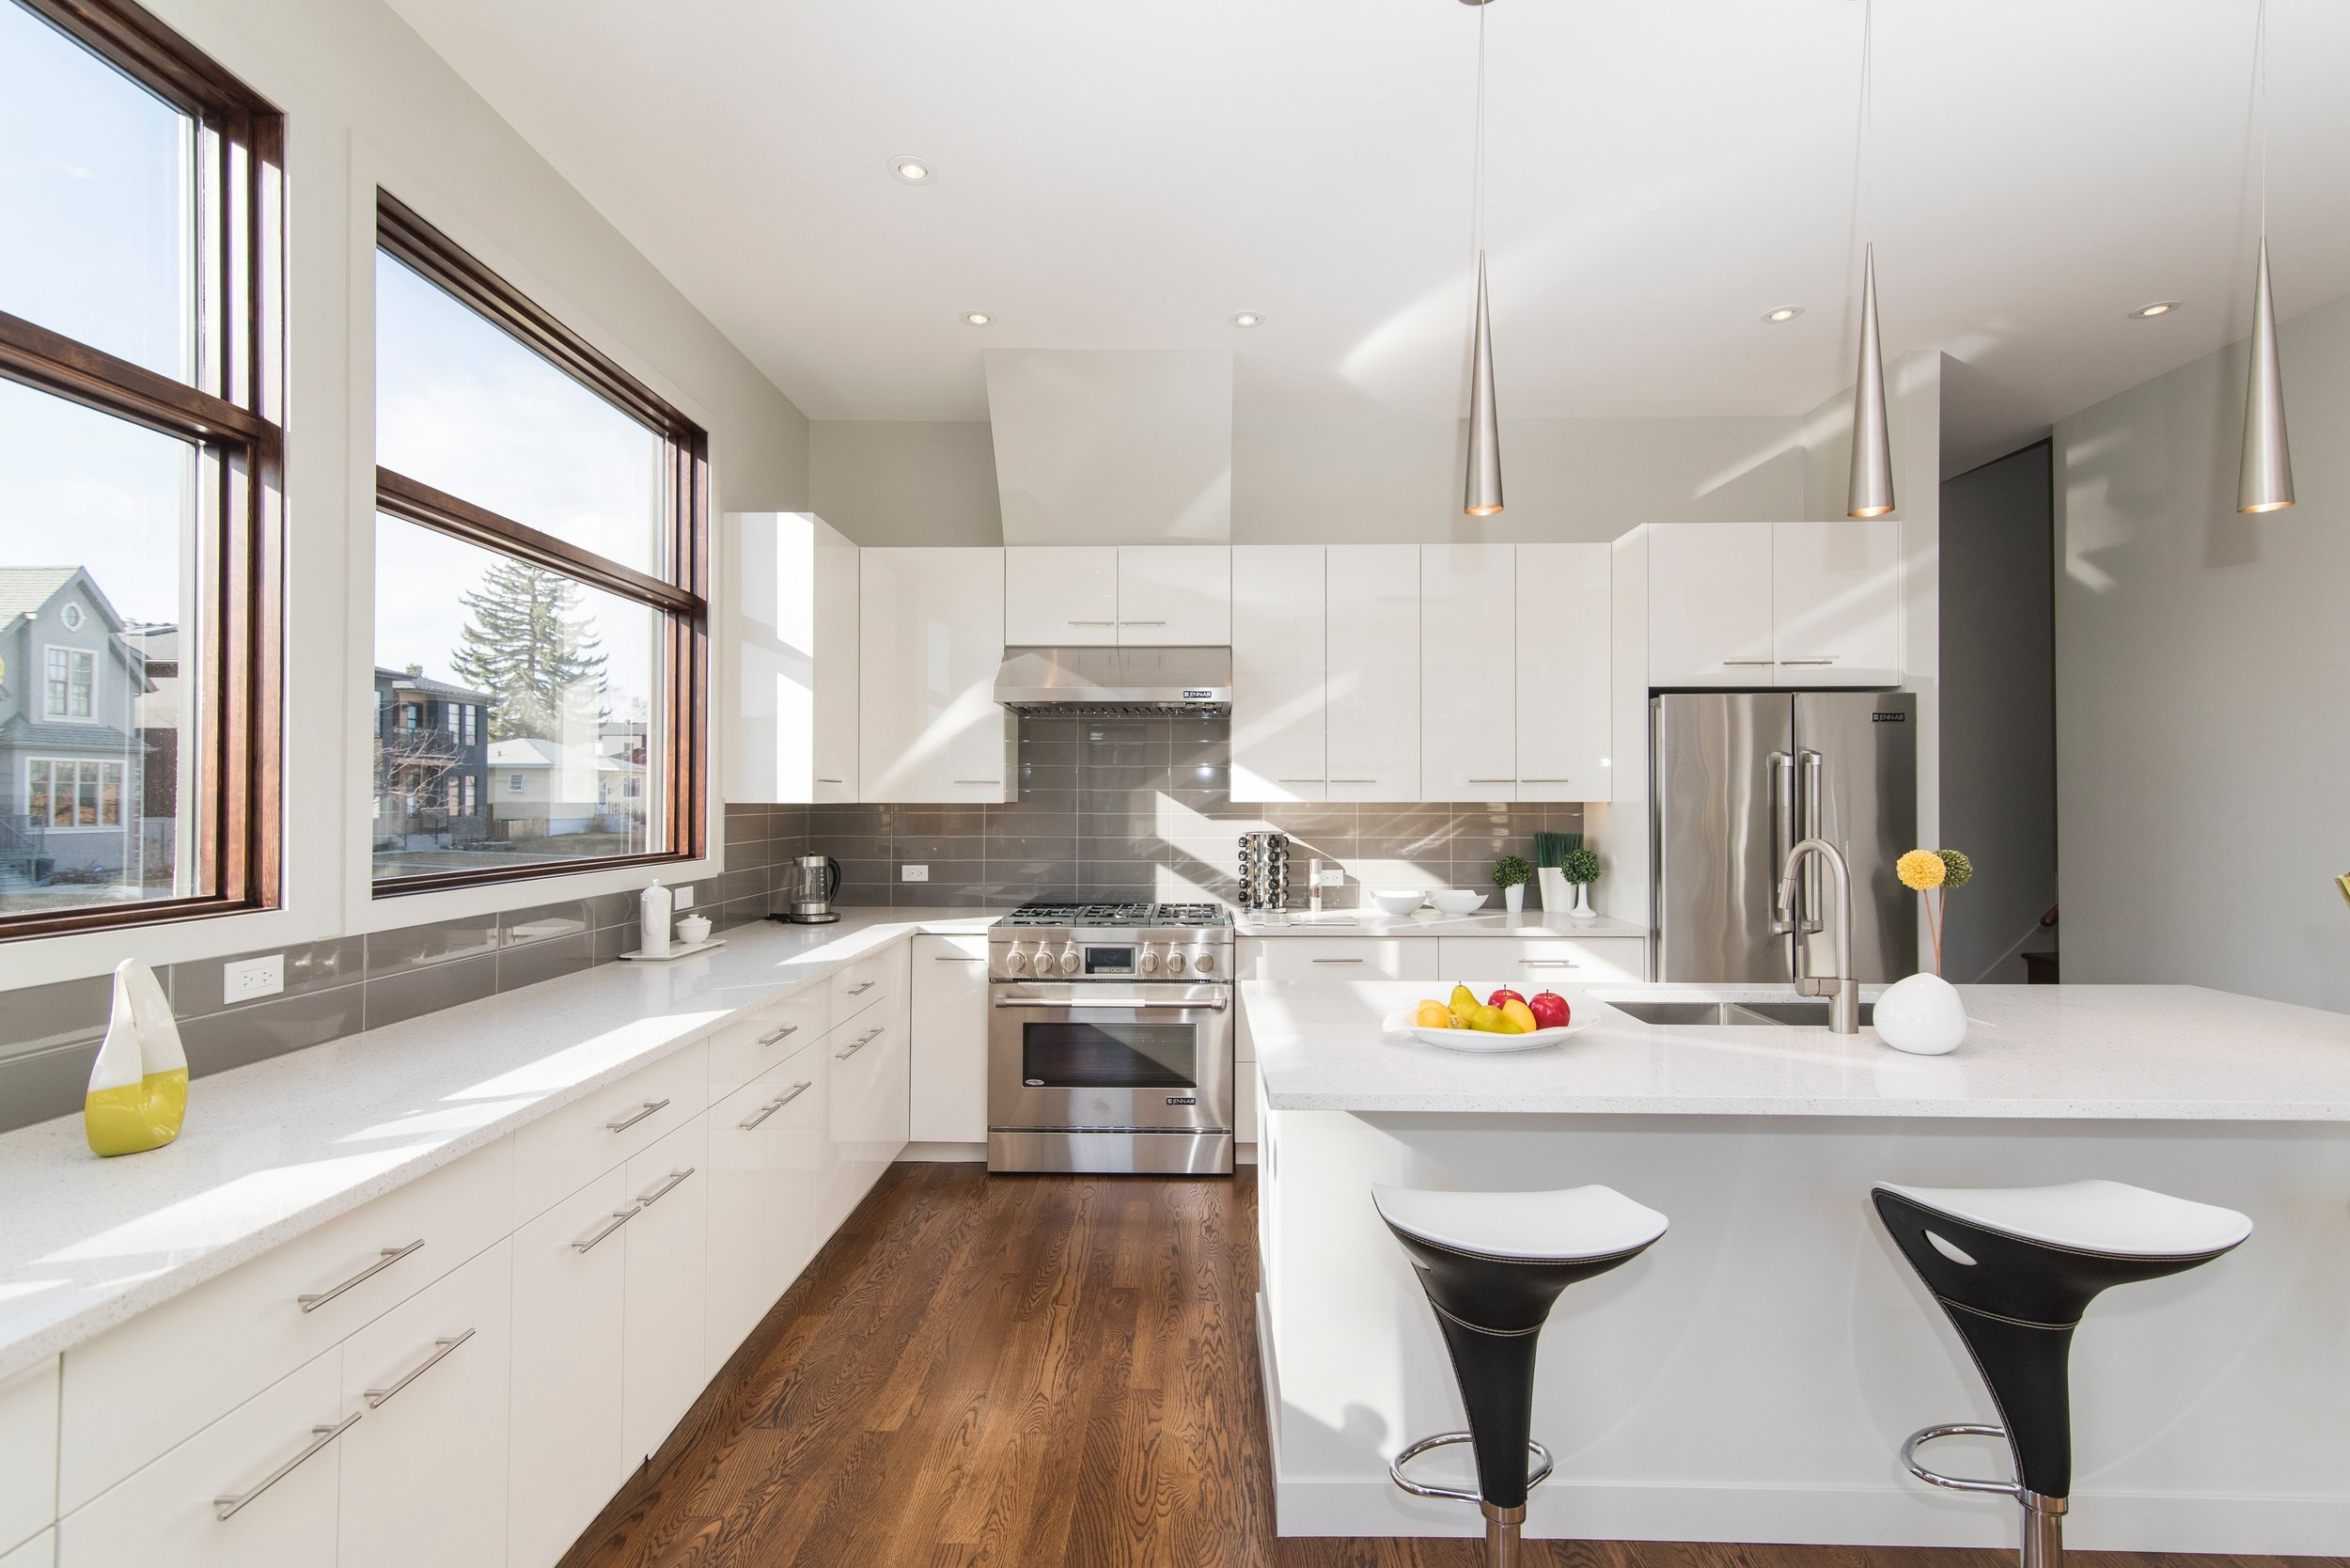 This gorgeous kitchen is ready for prime time, but if you want privacy, you'll need to buy your own blinds.